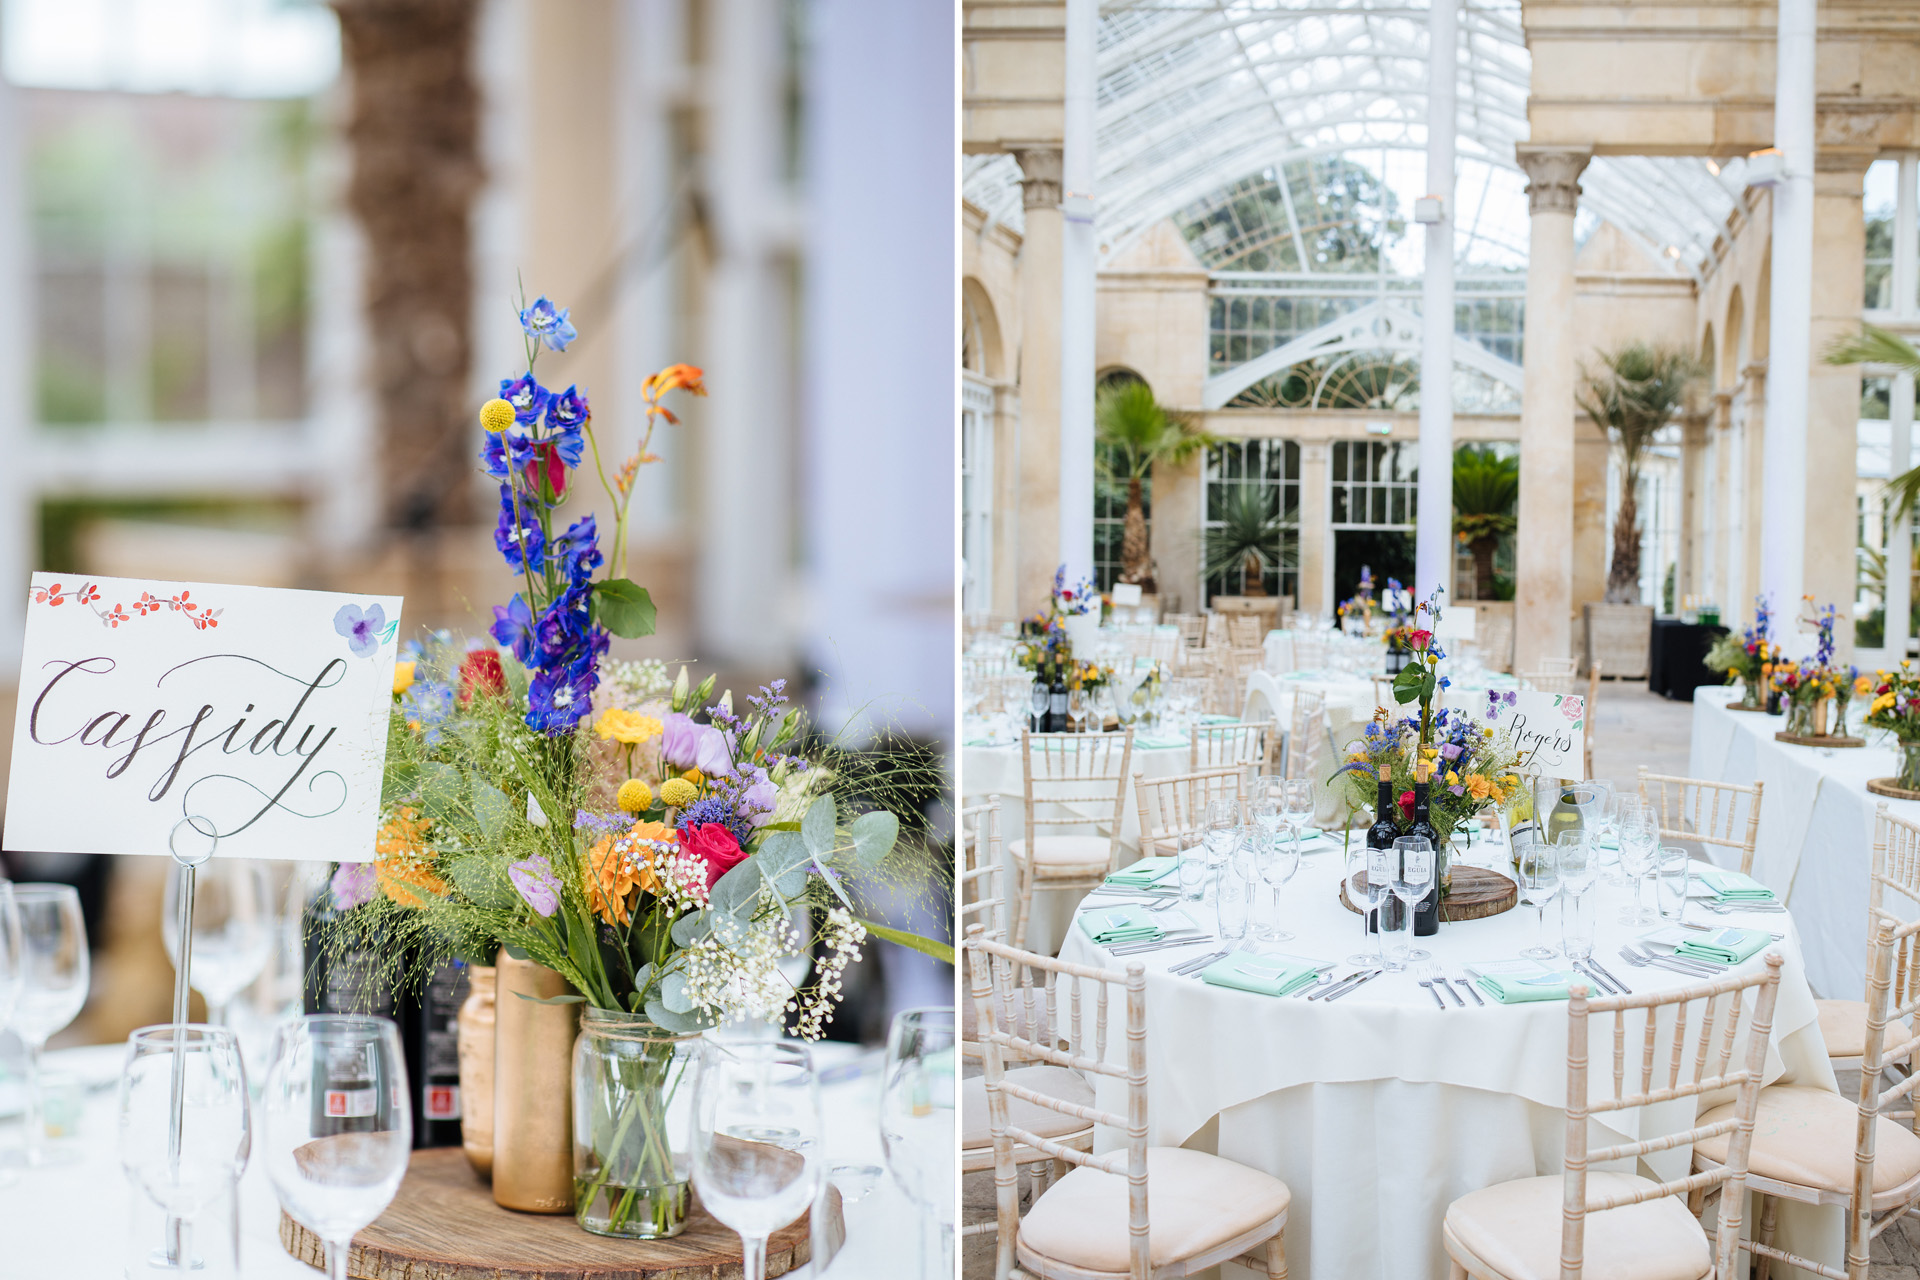 wild purple flowers decorating the tables at syon park wedding